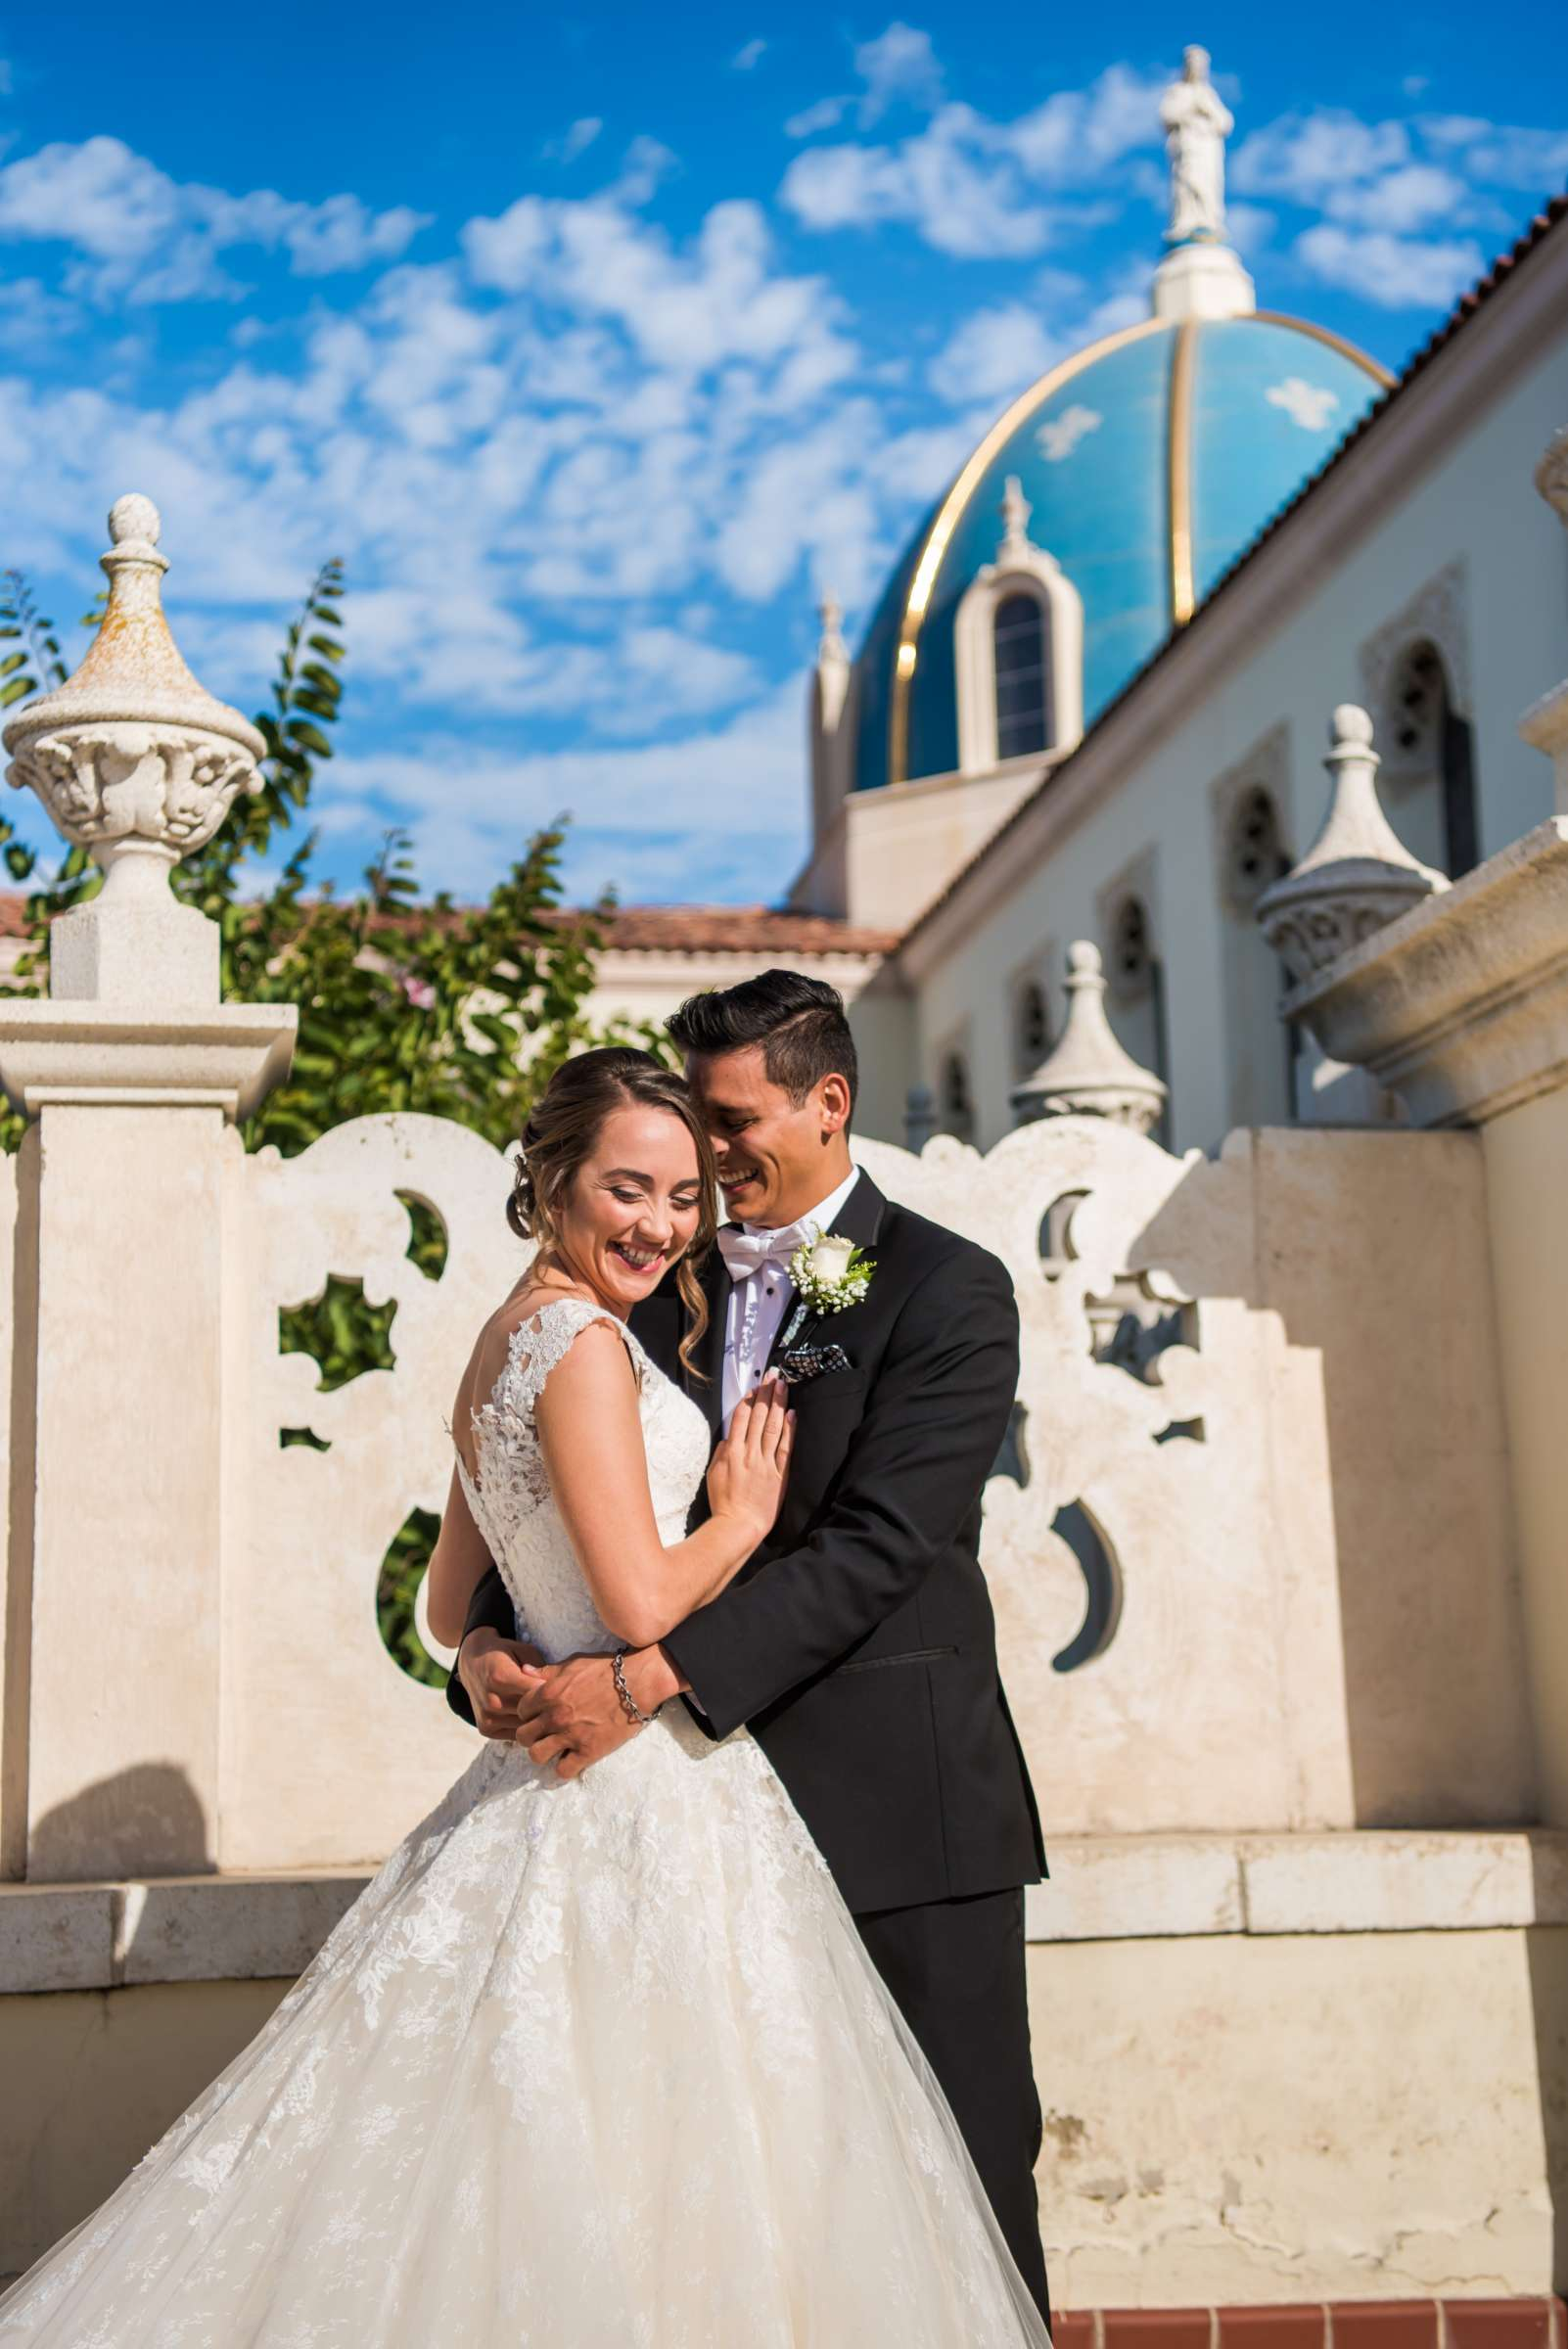 The Immaculata Wedding, Arianna and Jonah Wedding Photo #78 by True Photography